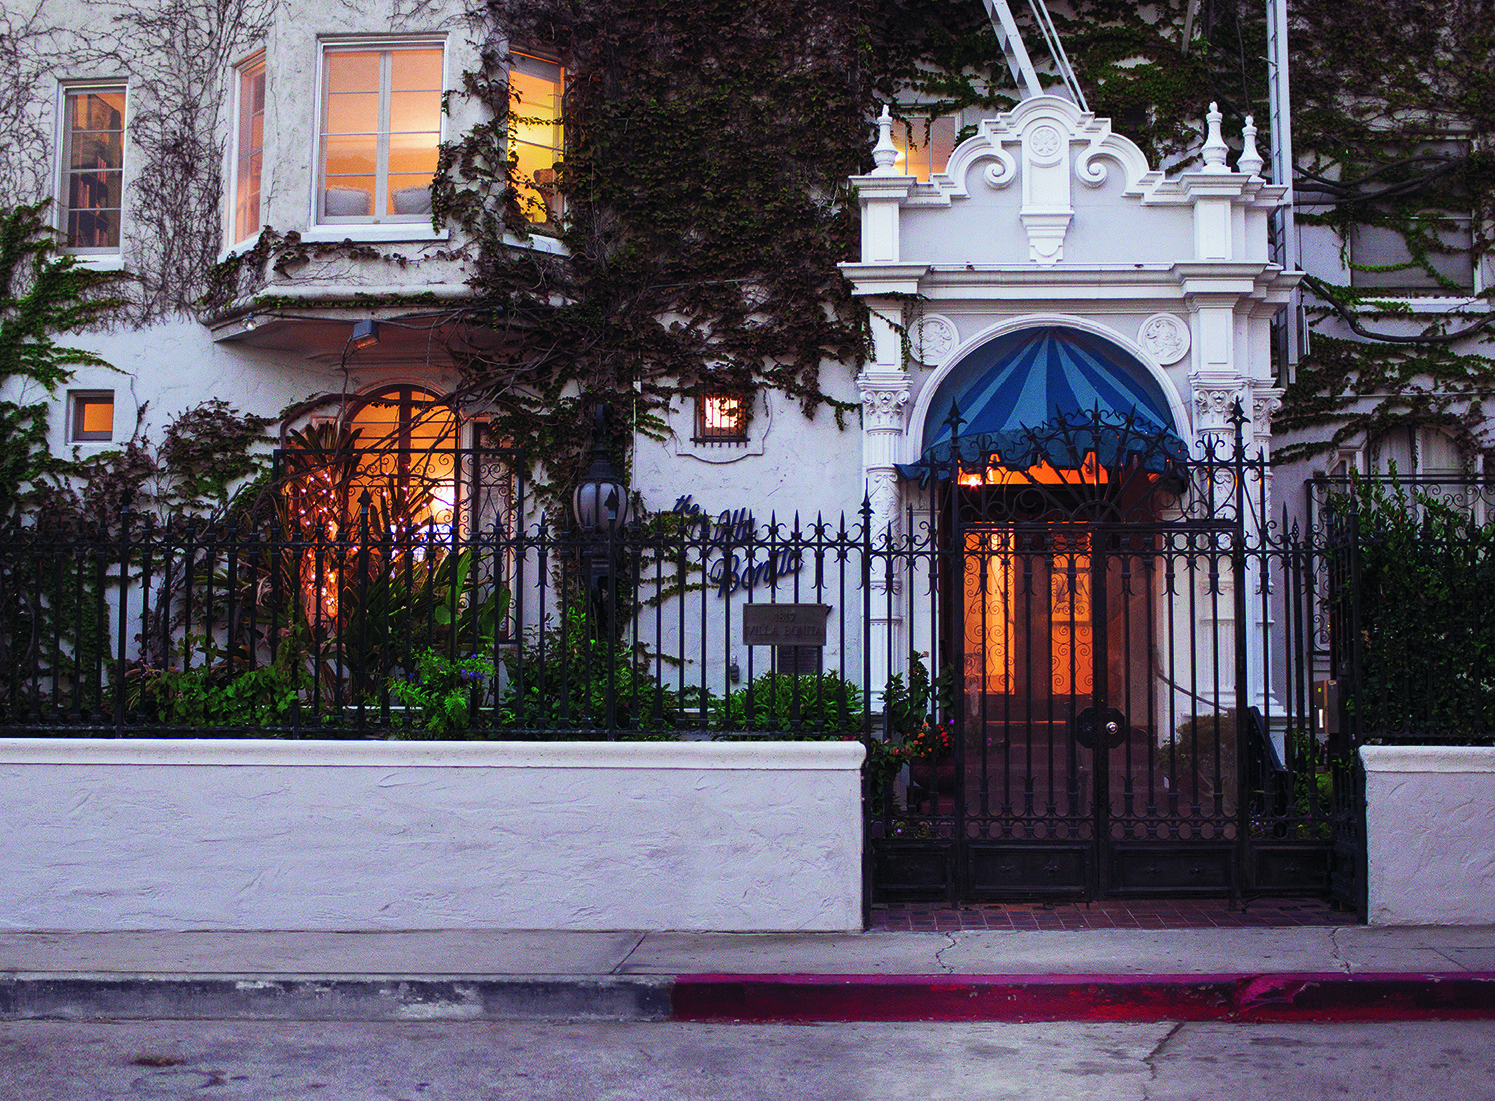 The entrance to Villa Bonita, built in the 1920s to house film cast and crew members, sits behind iron gates.